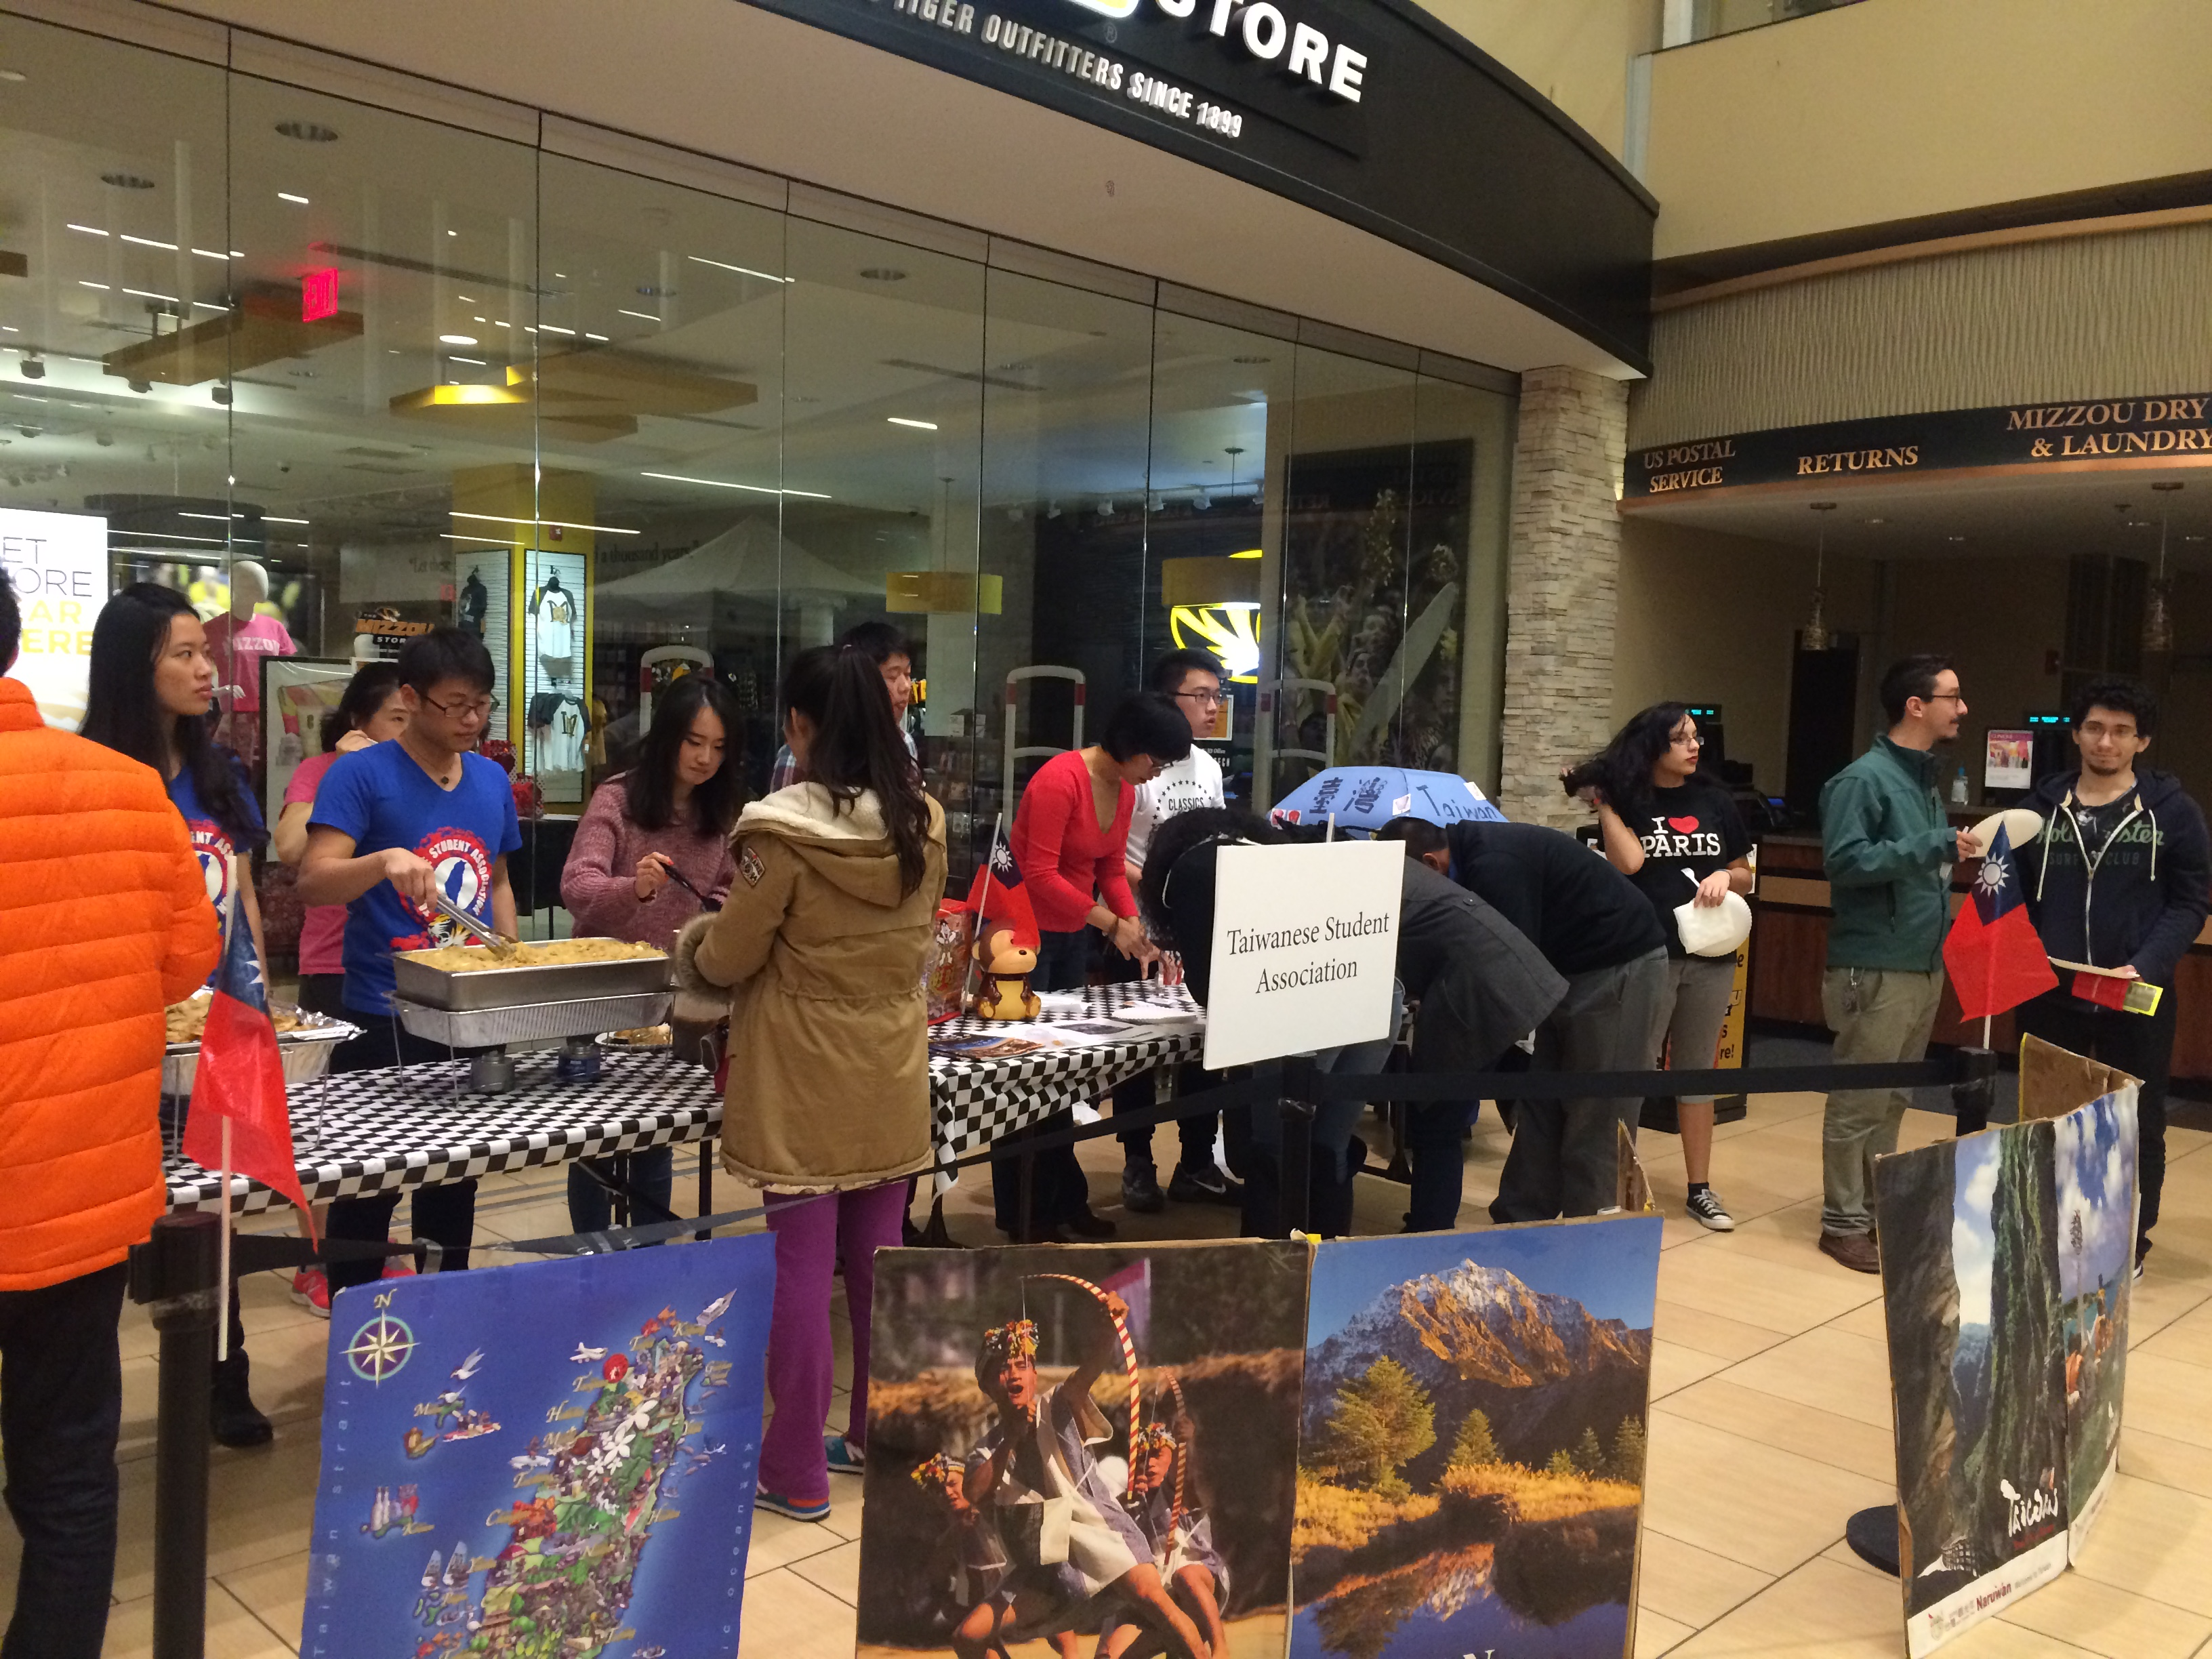 International students collaborate to satisfy appetites of MU Students